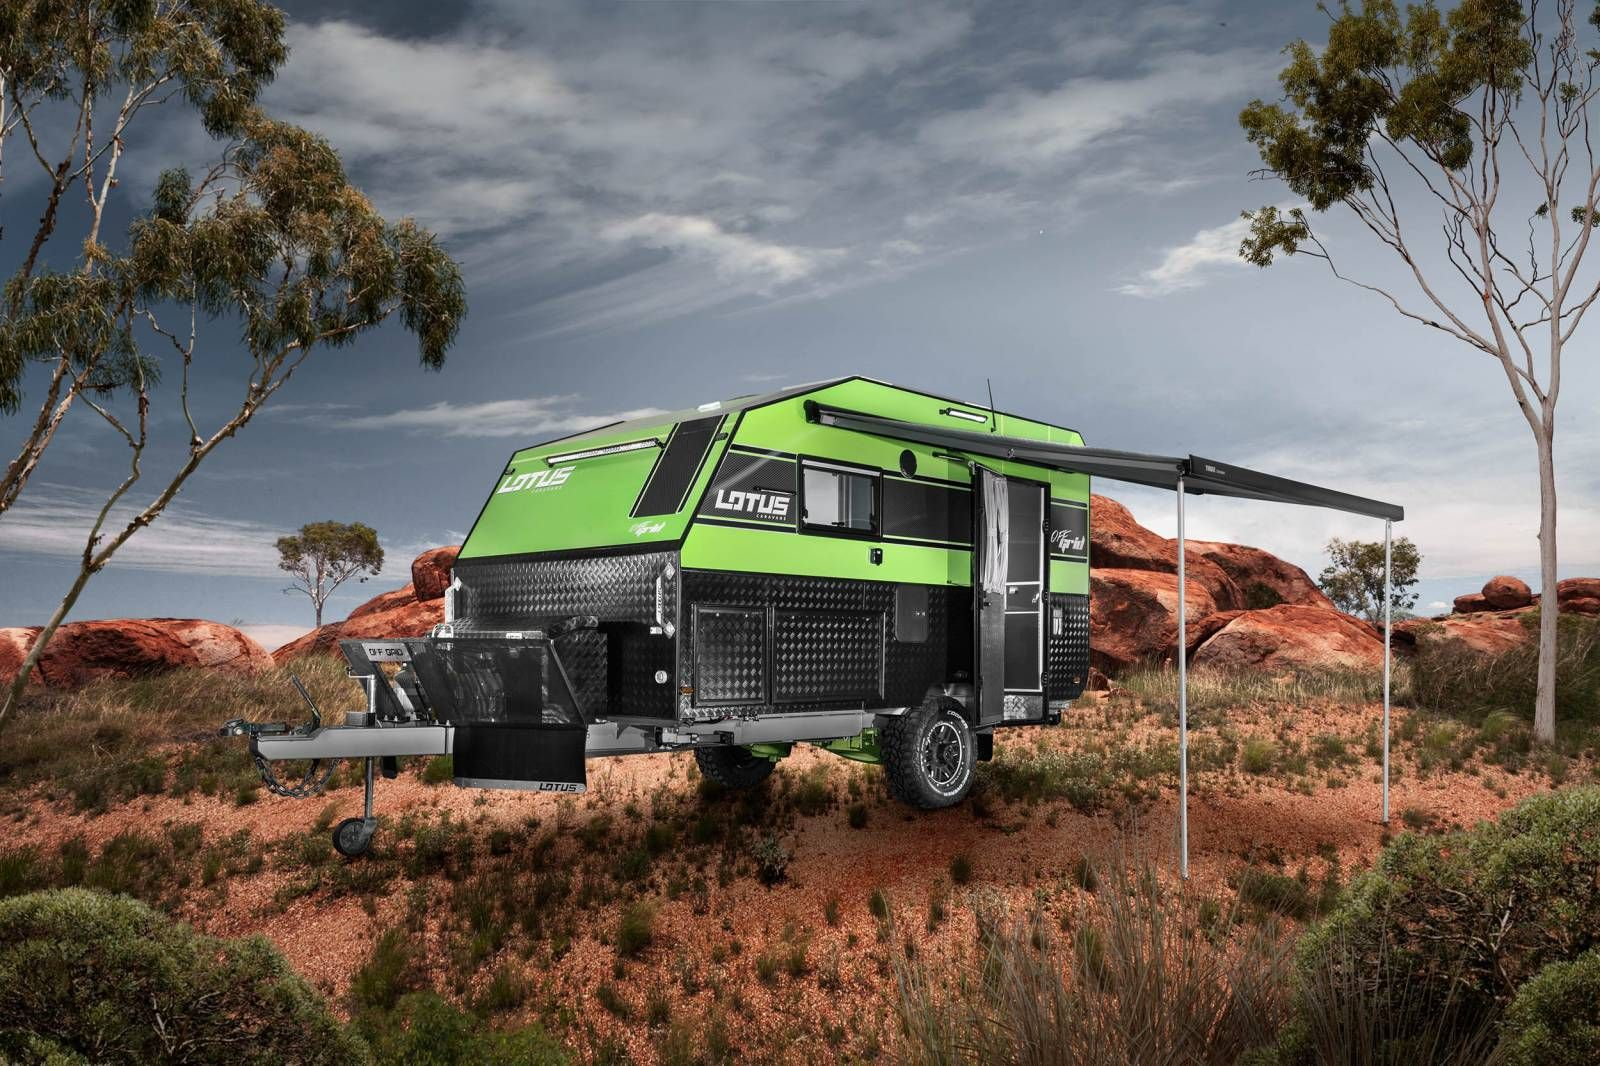 Lotus Caravans has an Off Grid trailer that\u0027s an outback camper ...